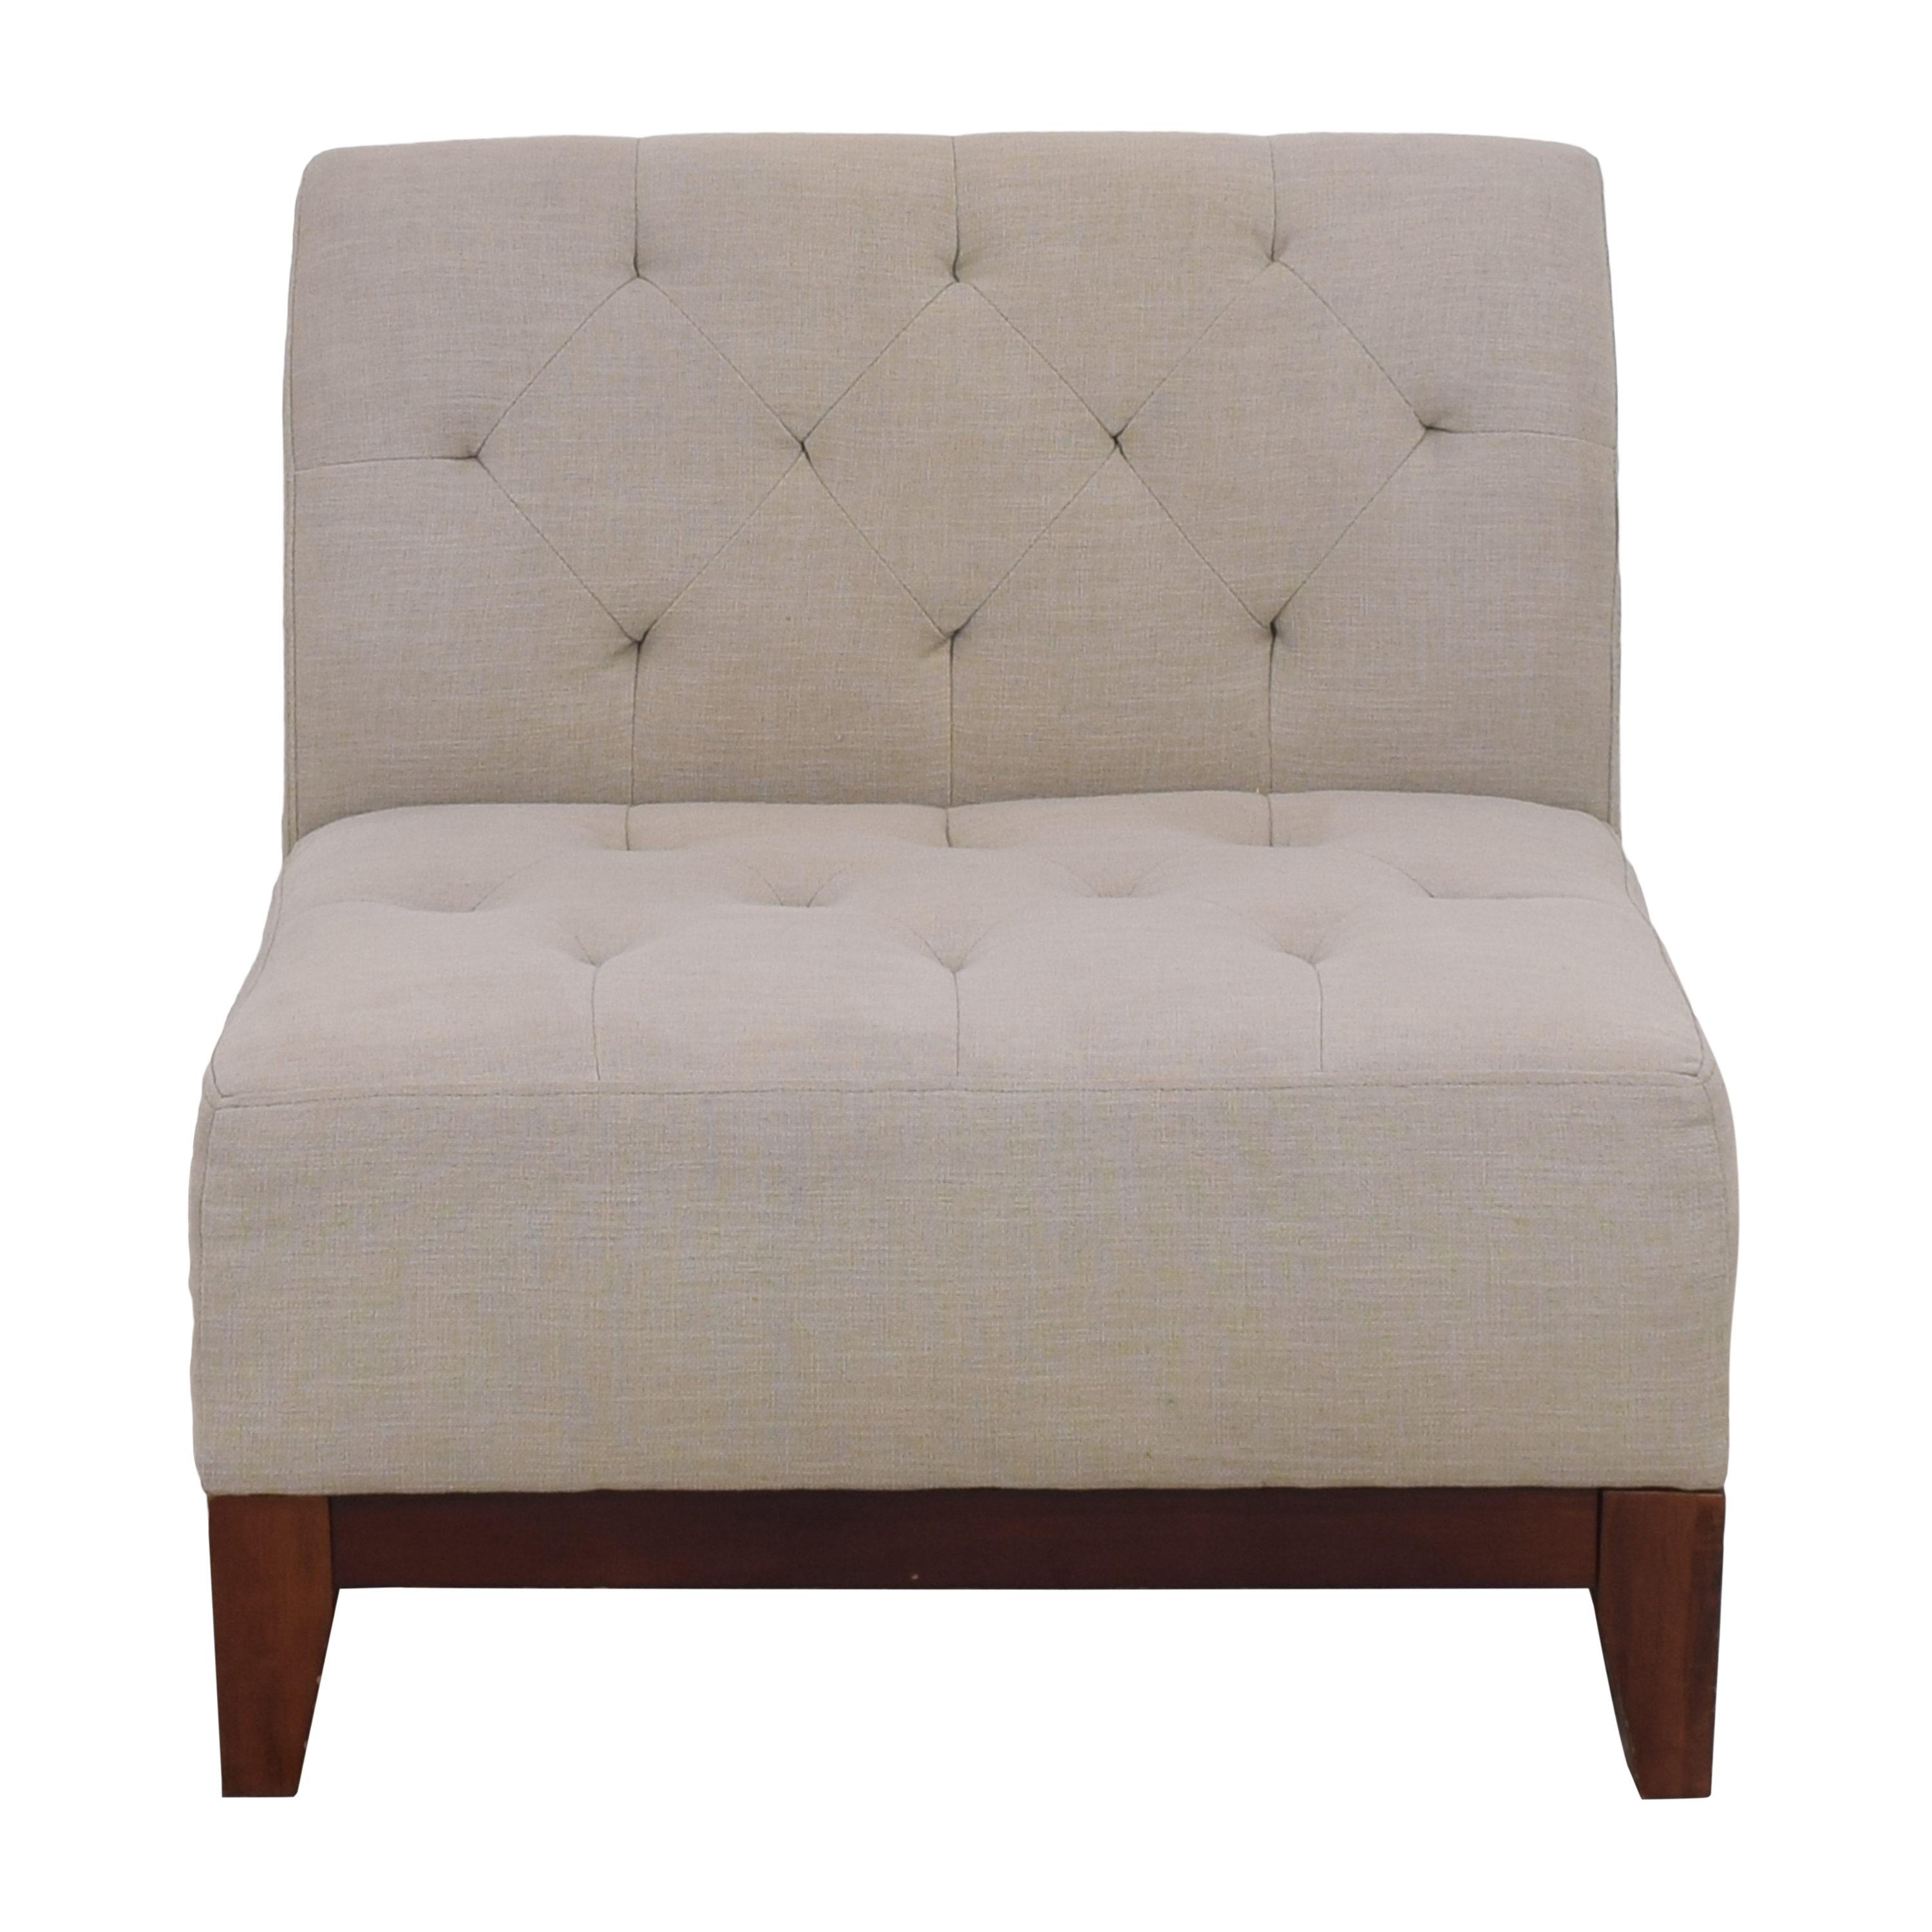 Macy's Macy's Tufted Slipper Chair coupon